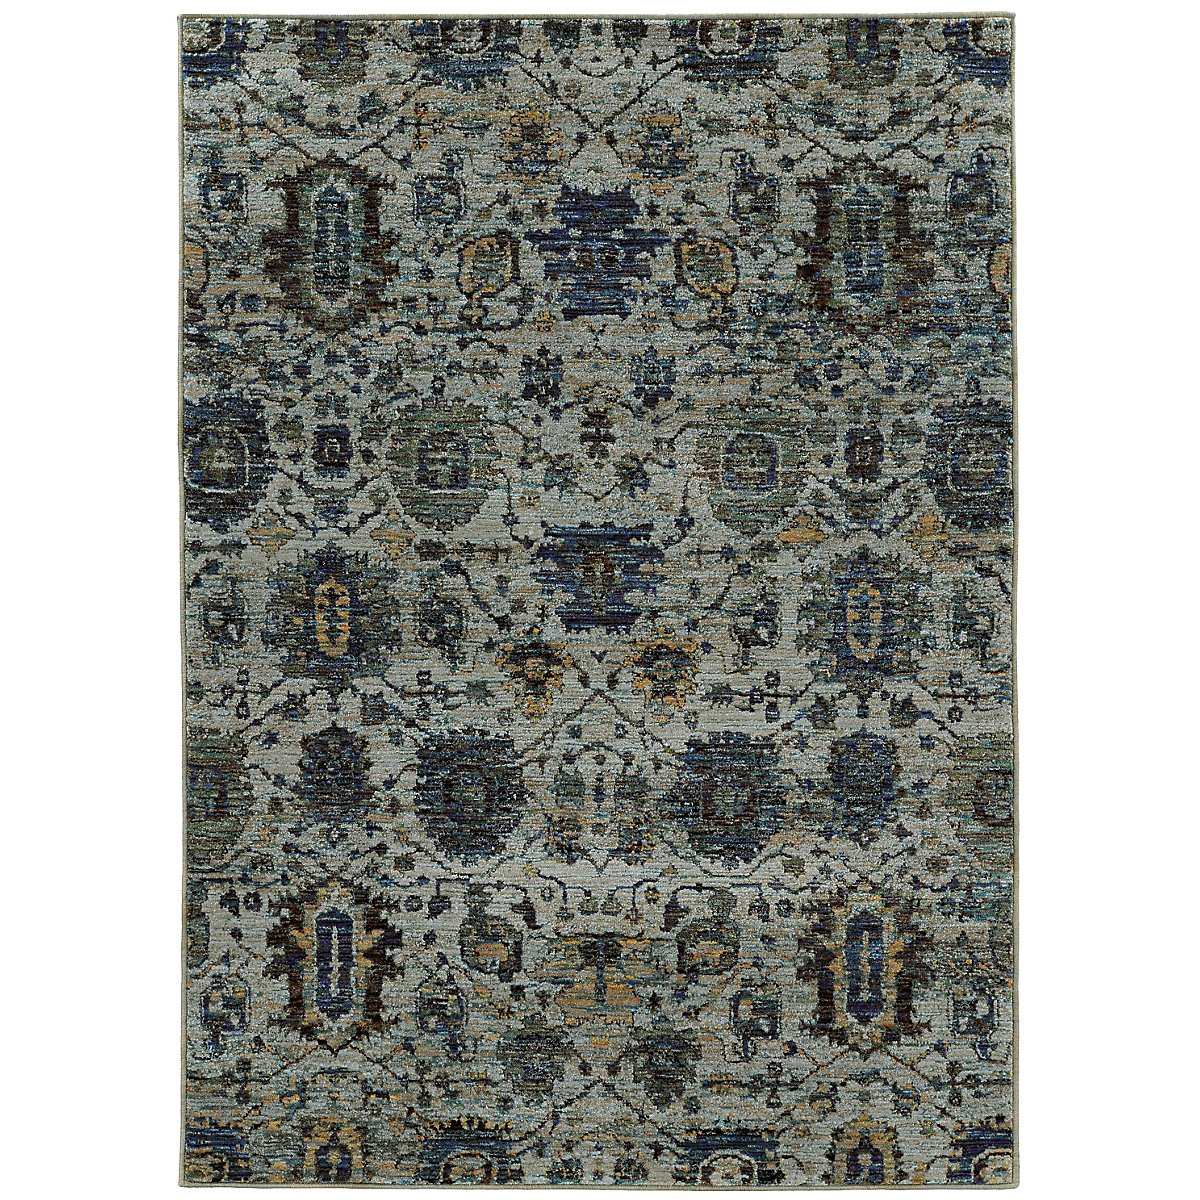 Andora Multicolored 8X11 Area Rug